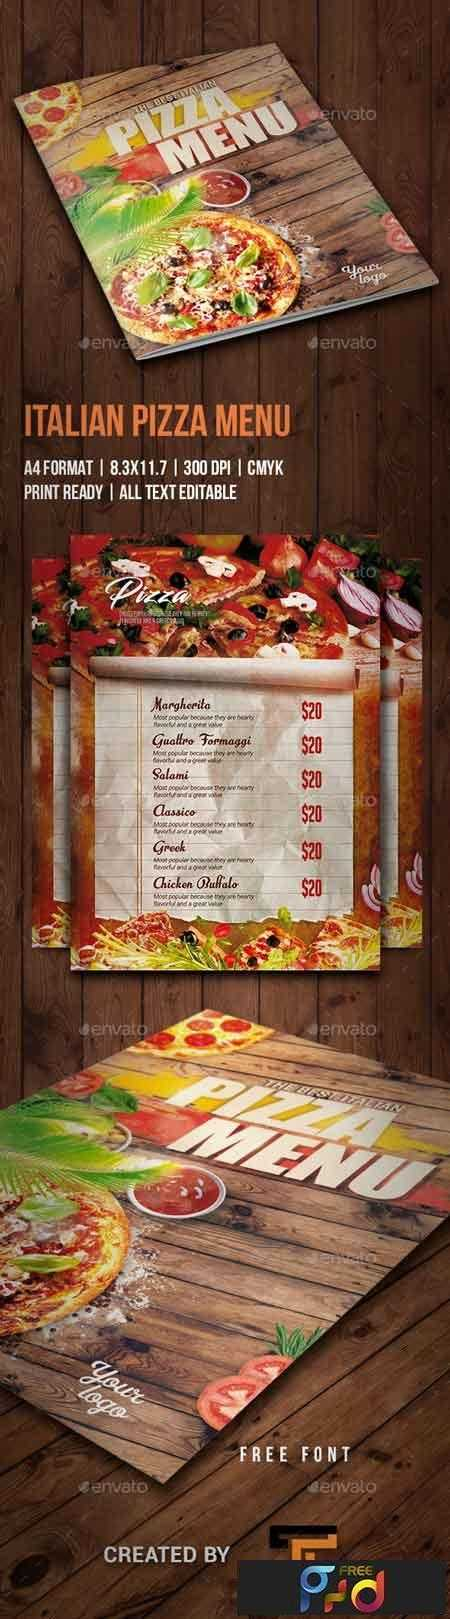 1809122 Italian Pizza Menu 22313238 1